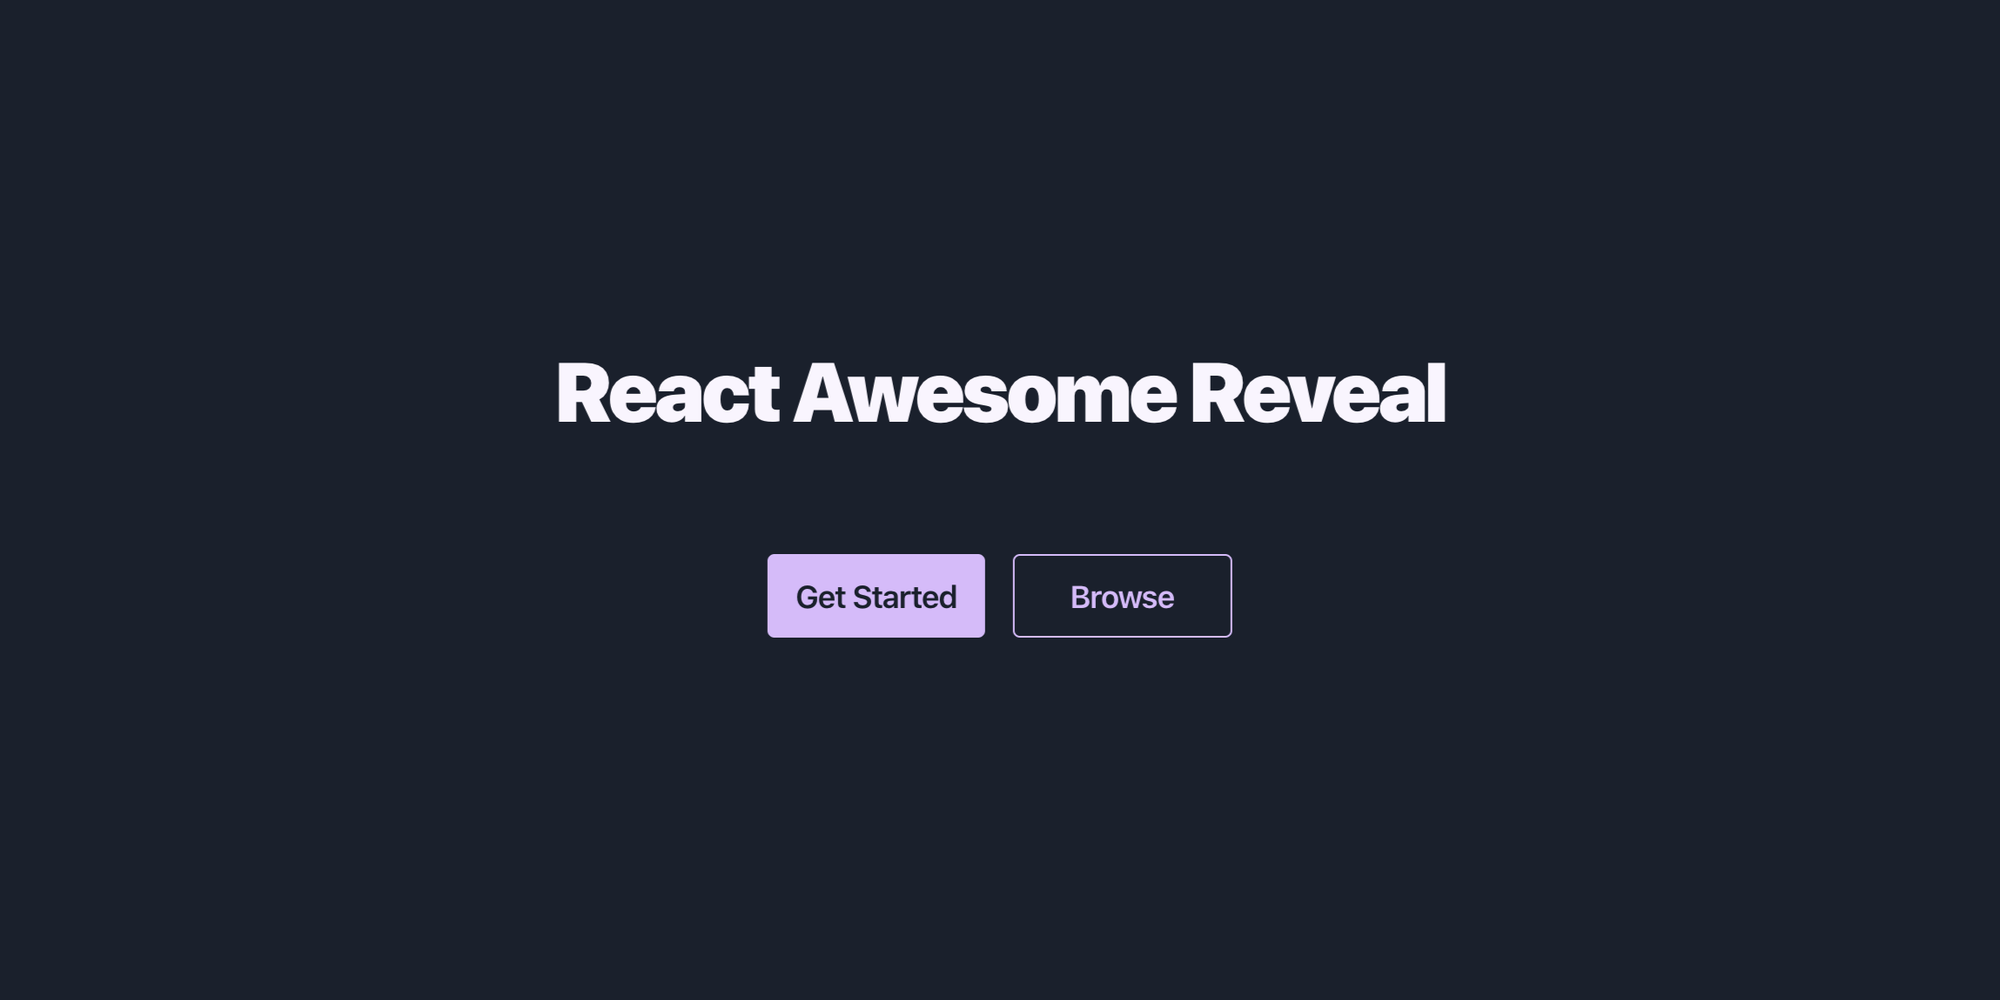 React Awesome Reveal Website Screenshot